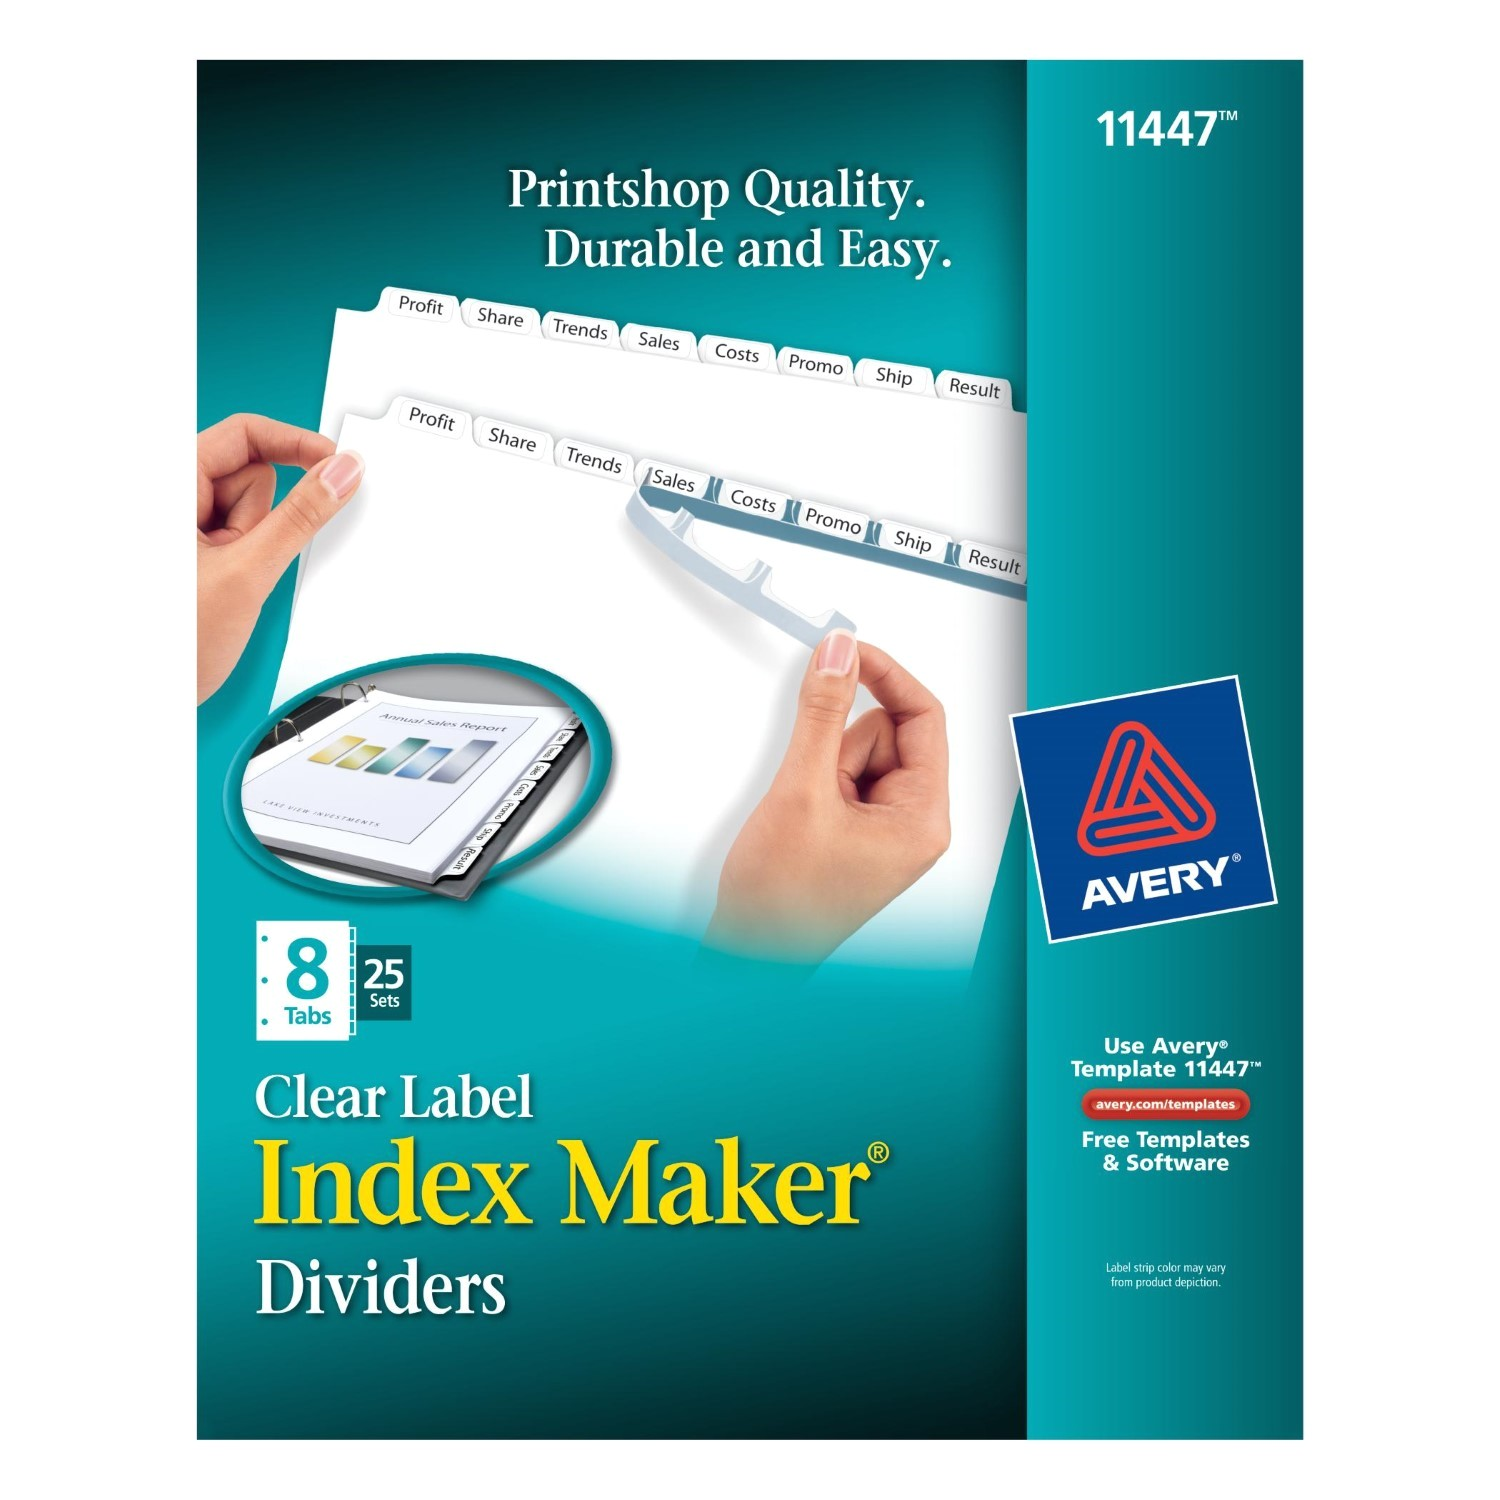 Avery 8 Tab Template 11447 Avery Index Maker Label Dividers White 8 Tabs Divider